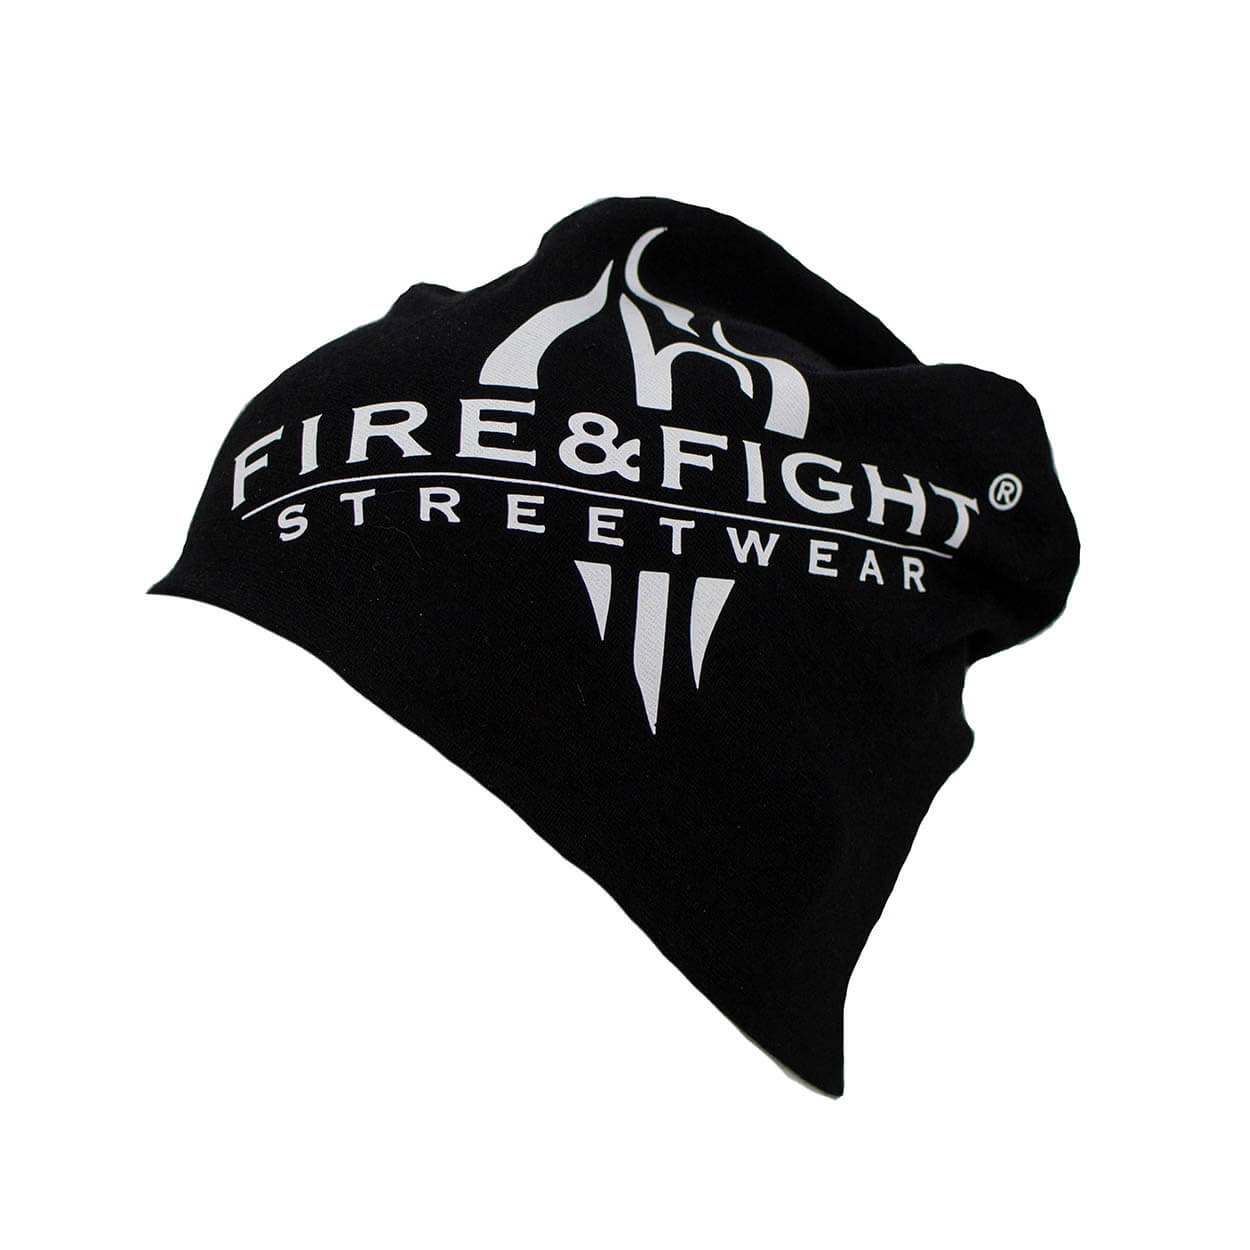 FIRE & FIGHT Streetwear® Beanie